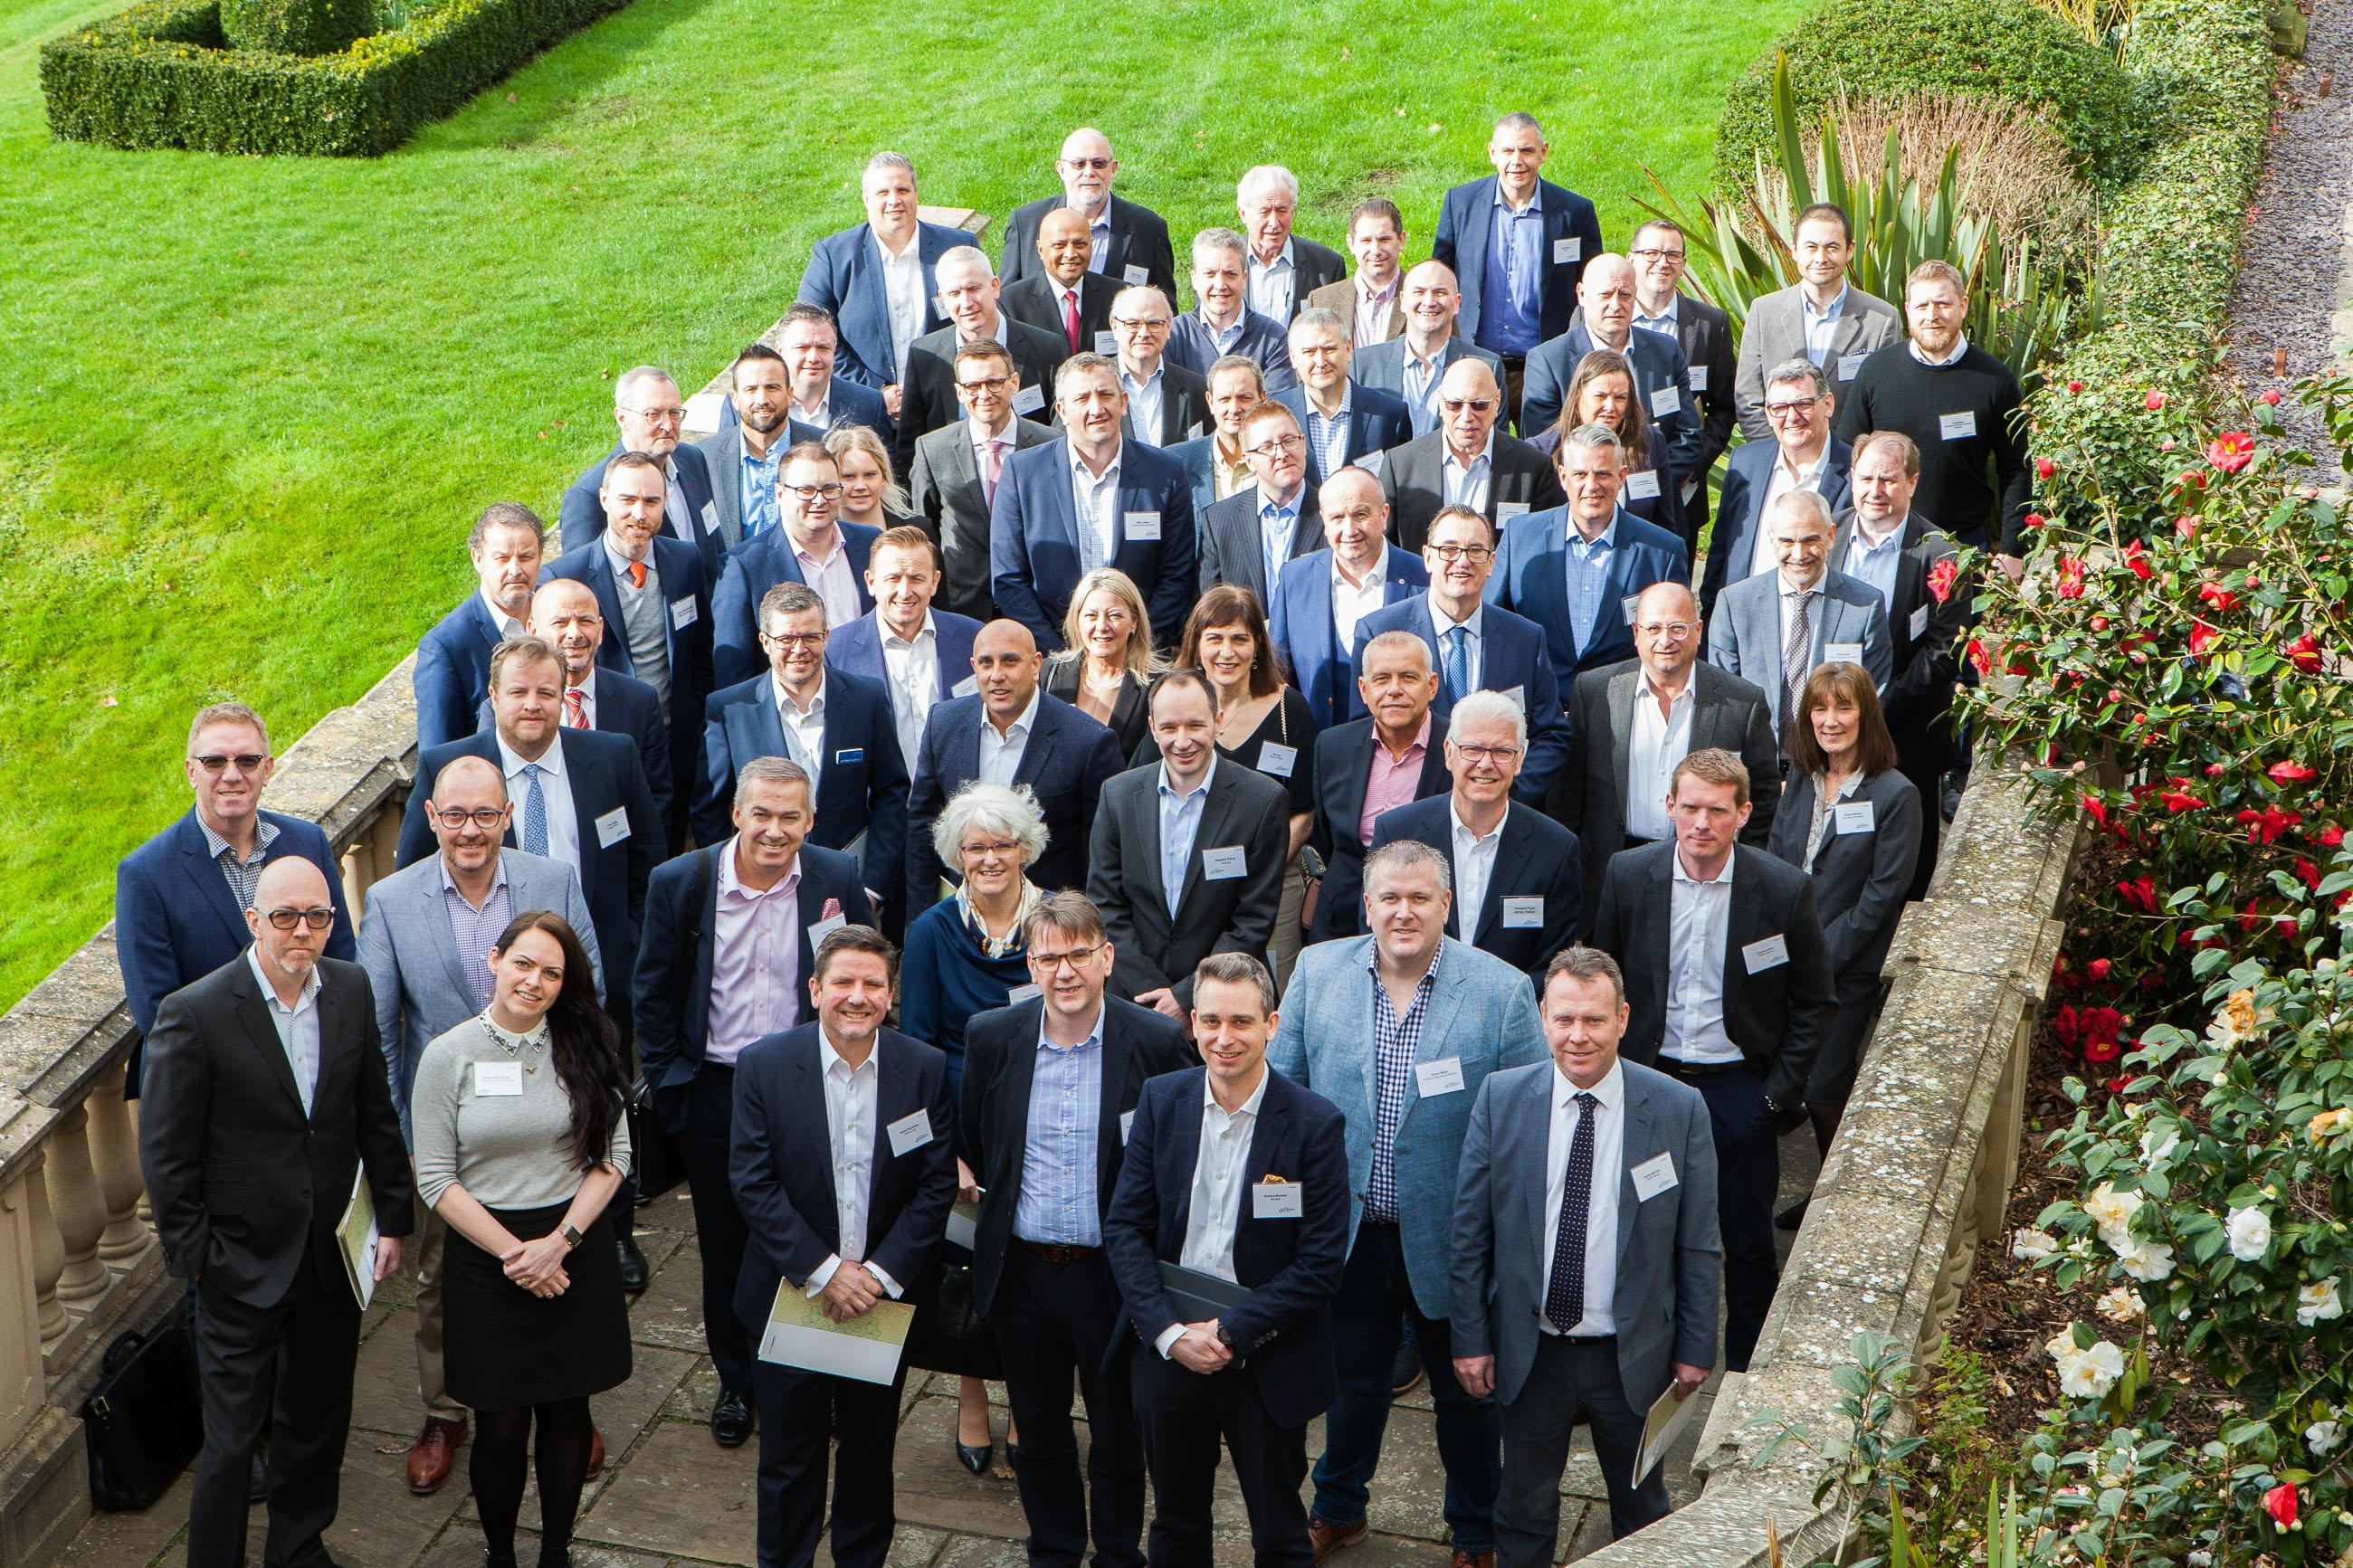 UK Broker Summit 2019 - Group Photo